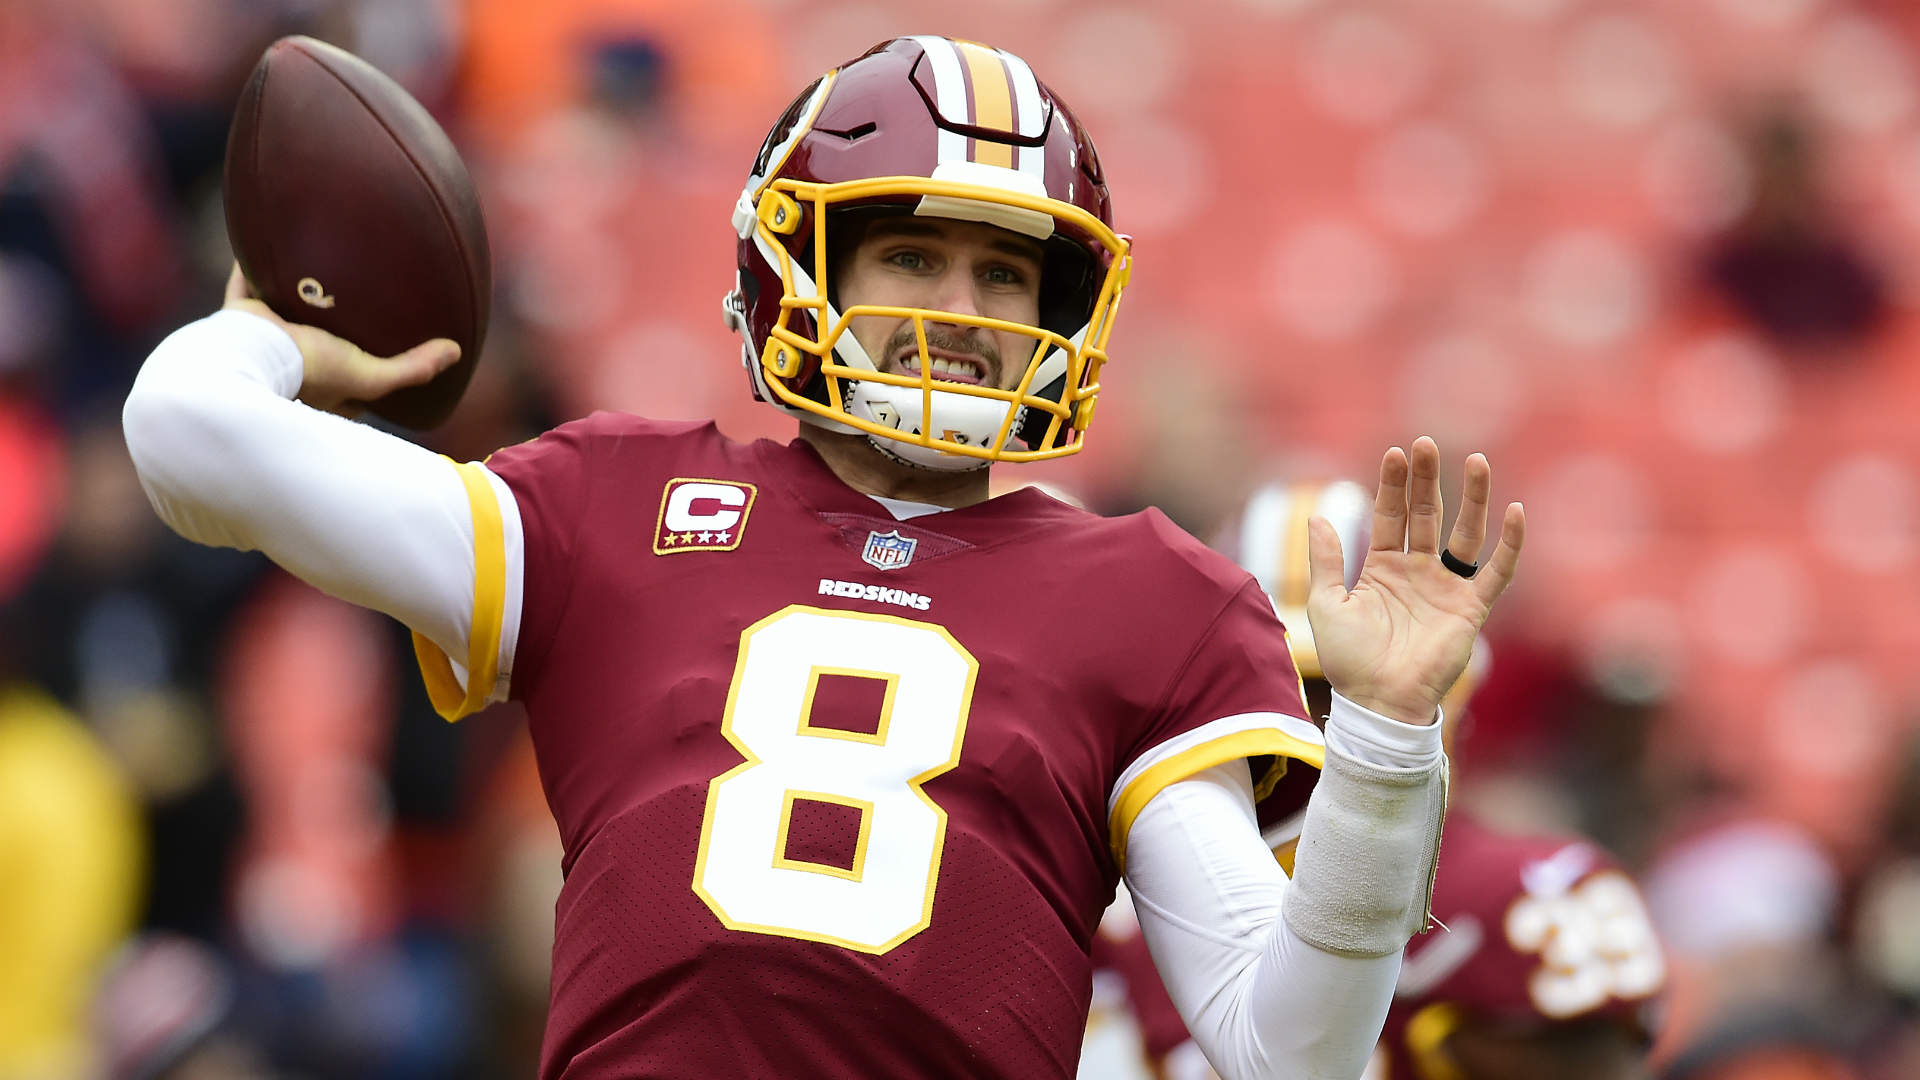 Kirk Cousins free agency rumors: Jets fear QB 'destined' to sign with Vikings